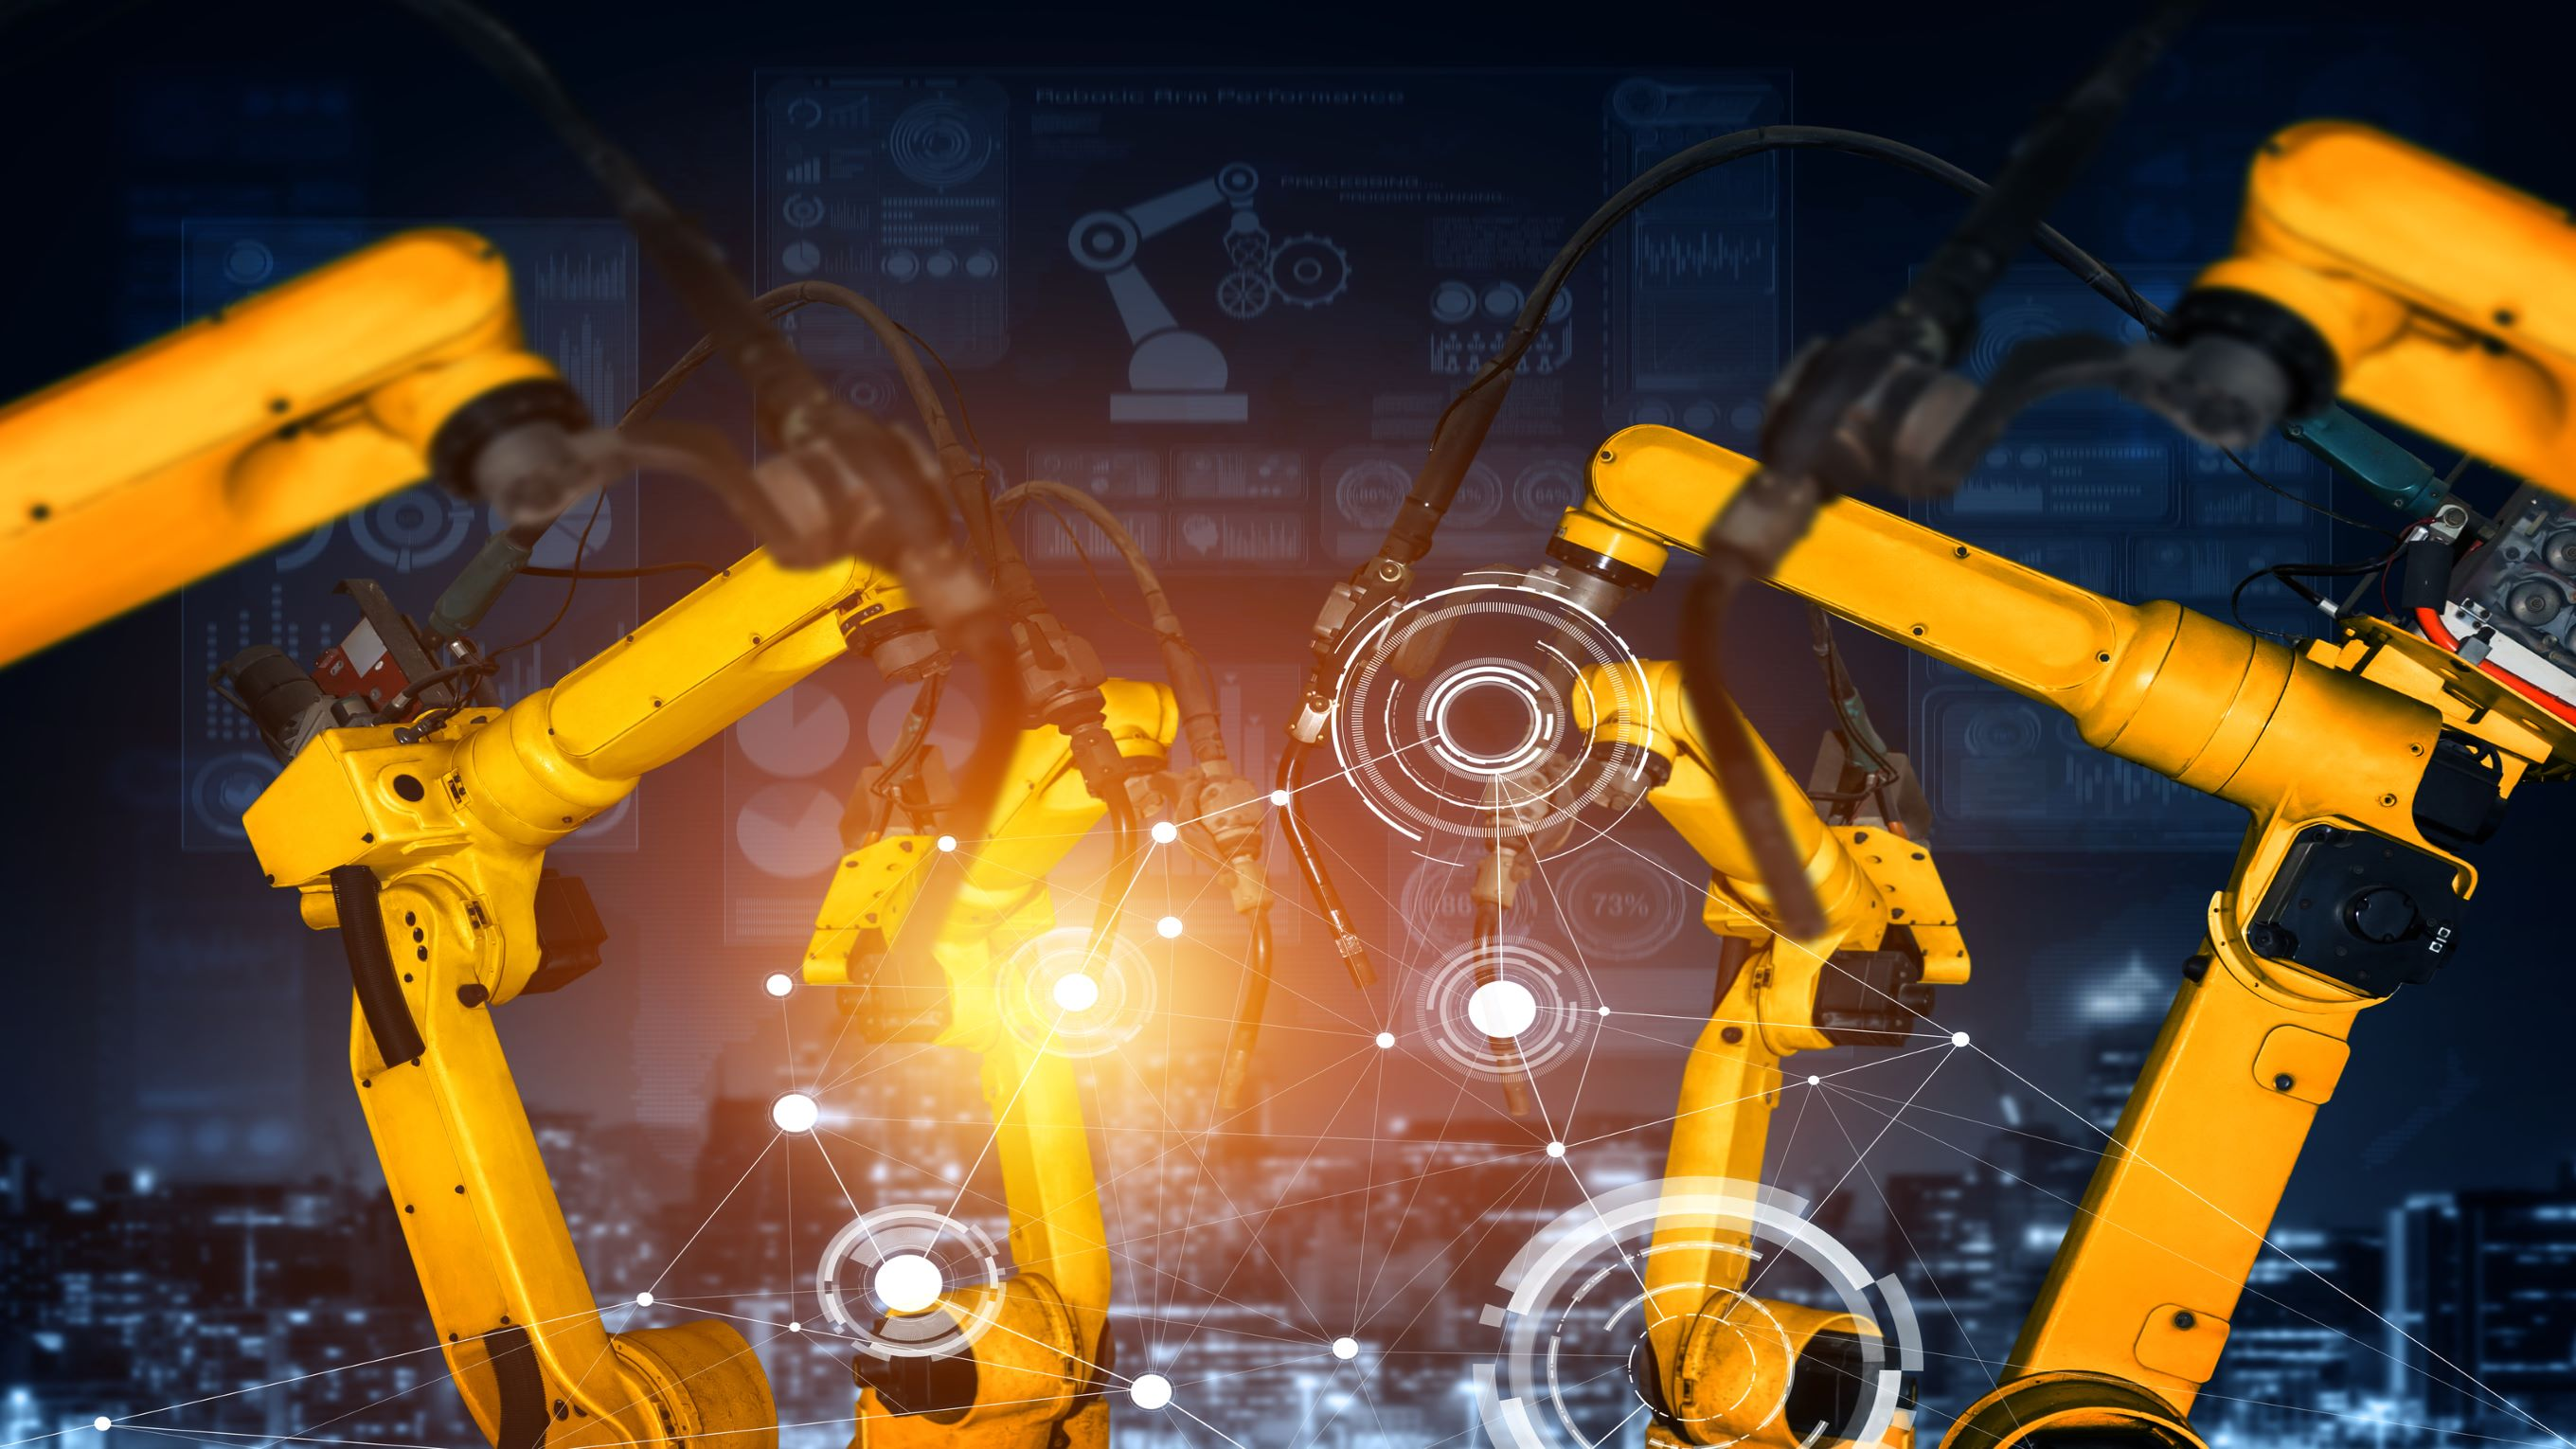 2021 Themes: Automation another challenge for the proven development model